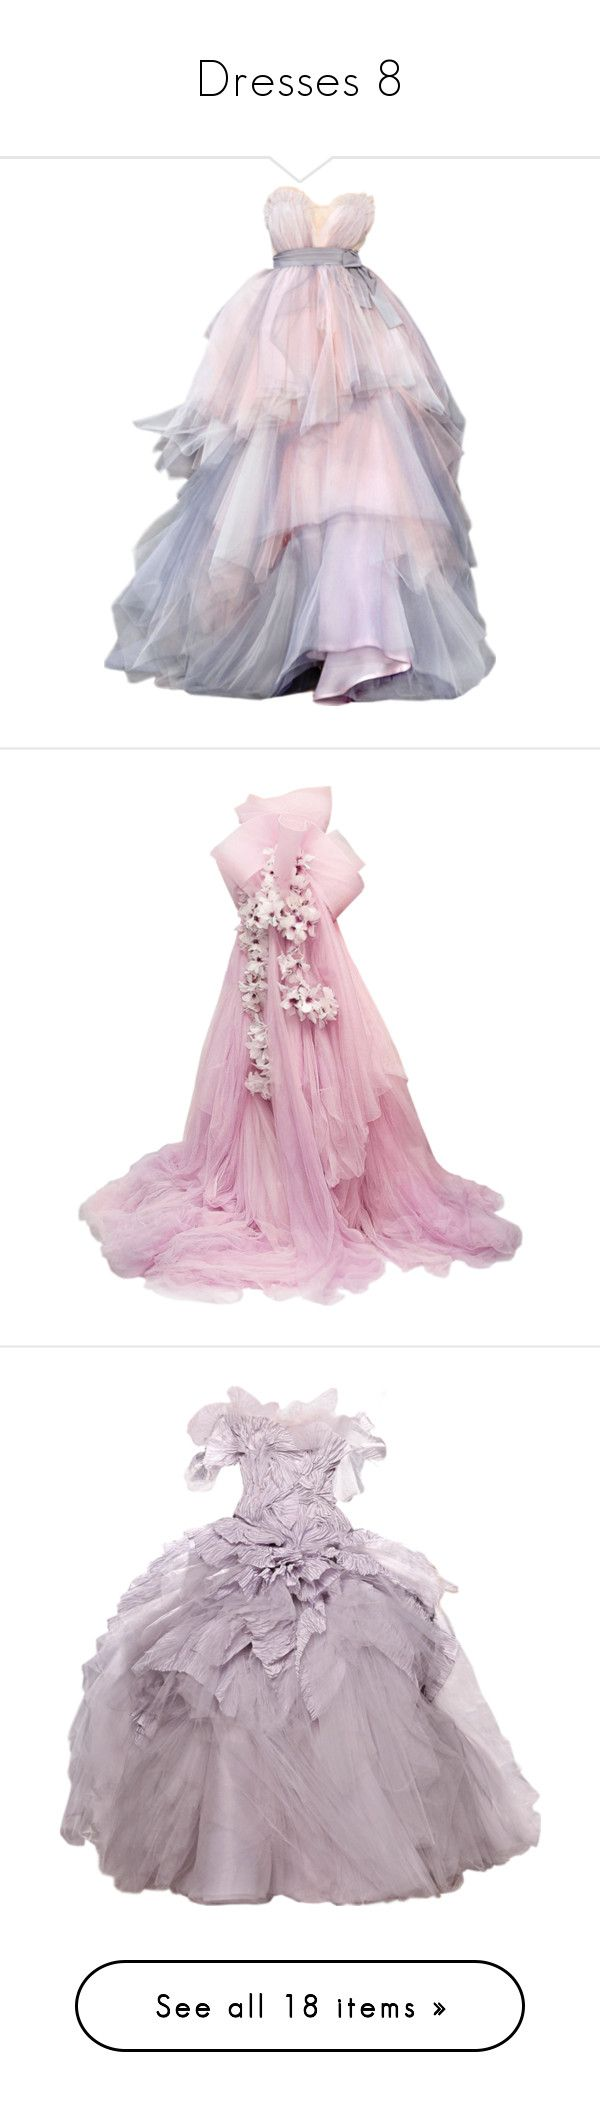 """Dresses 8"" by soenticing ❤ liked on Polyvore featuring dresses, gowns, vestidos, long dresses, pink evening gowns, pink ball gown, pink evening dress, pink dress, marchesa and marchesa dresses"